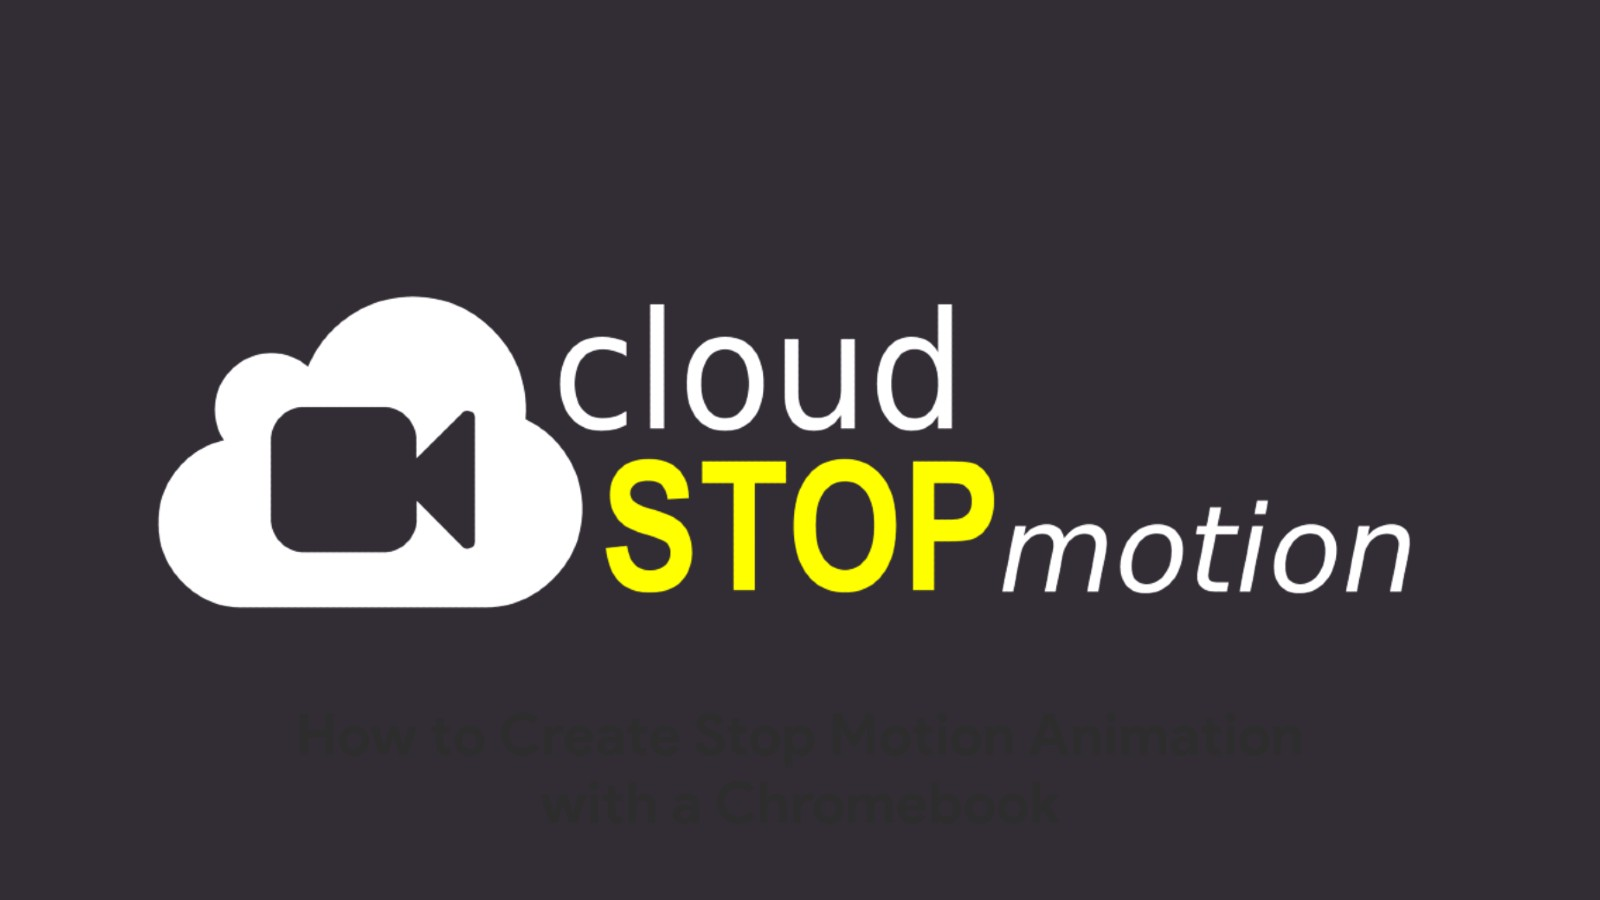 Create stop motion animation videos in the cloud with this new Chromebook Perk